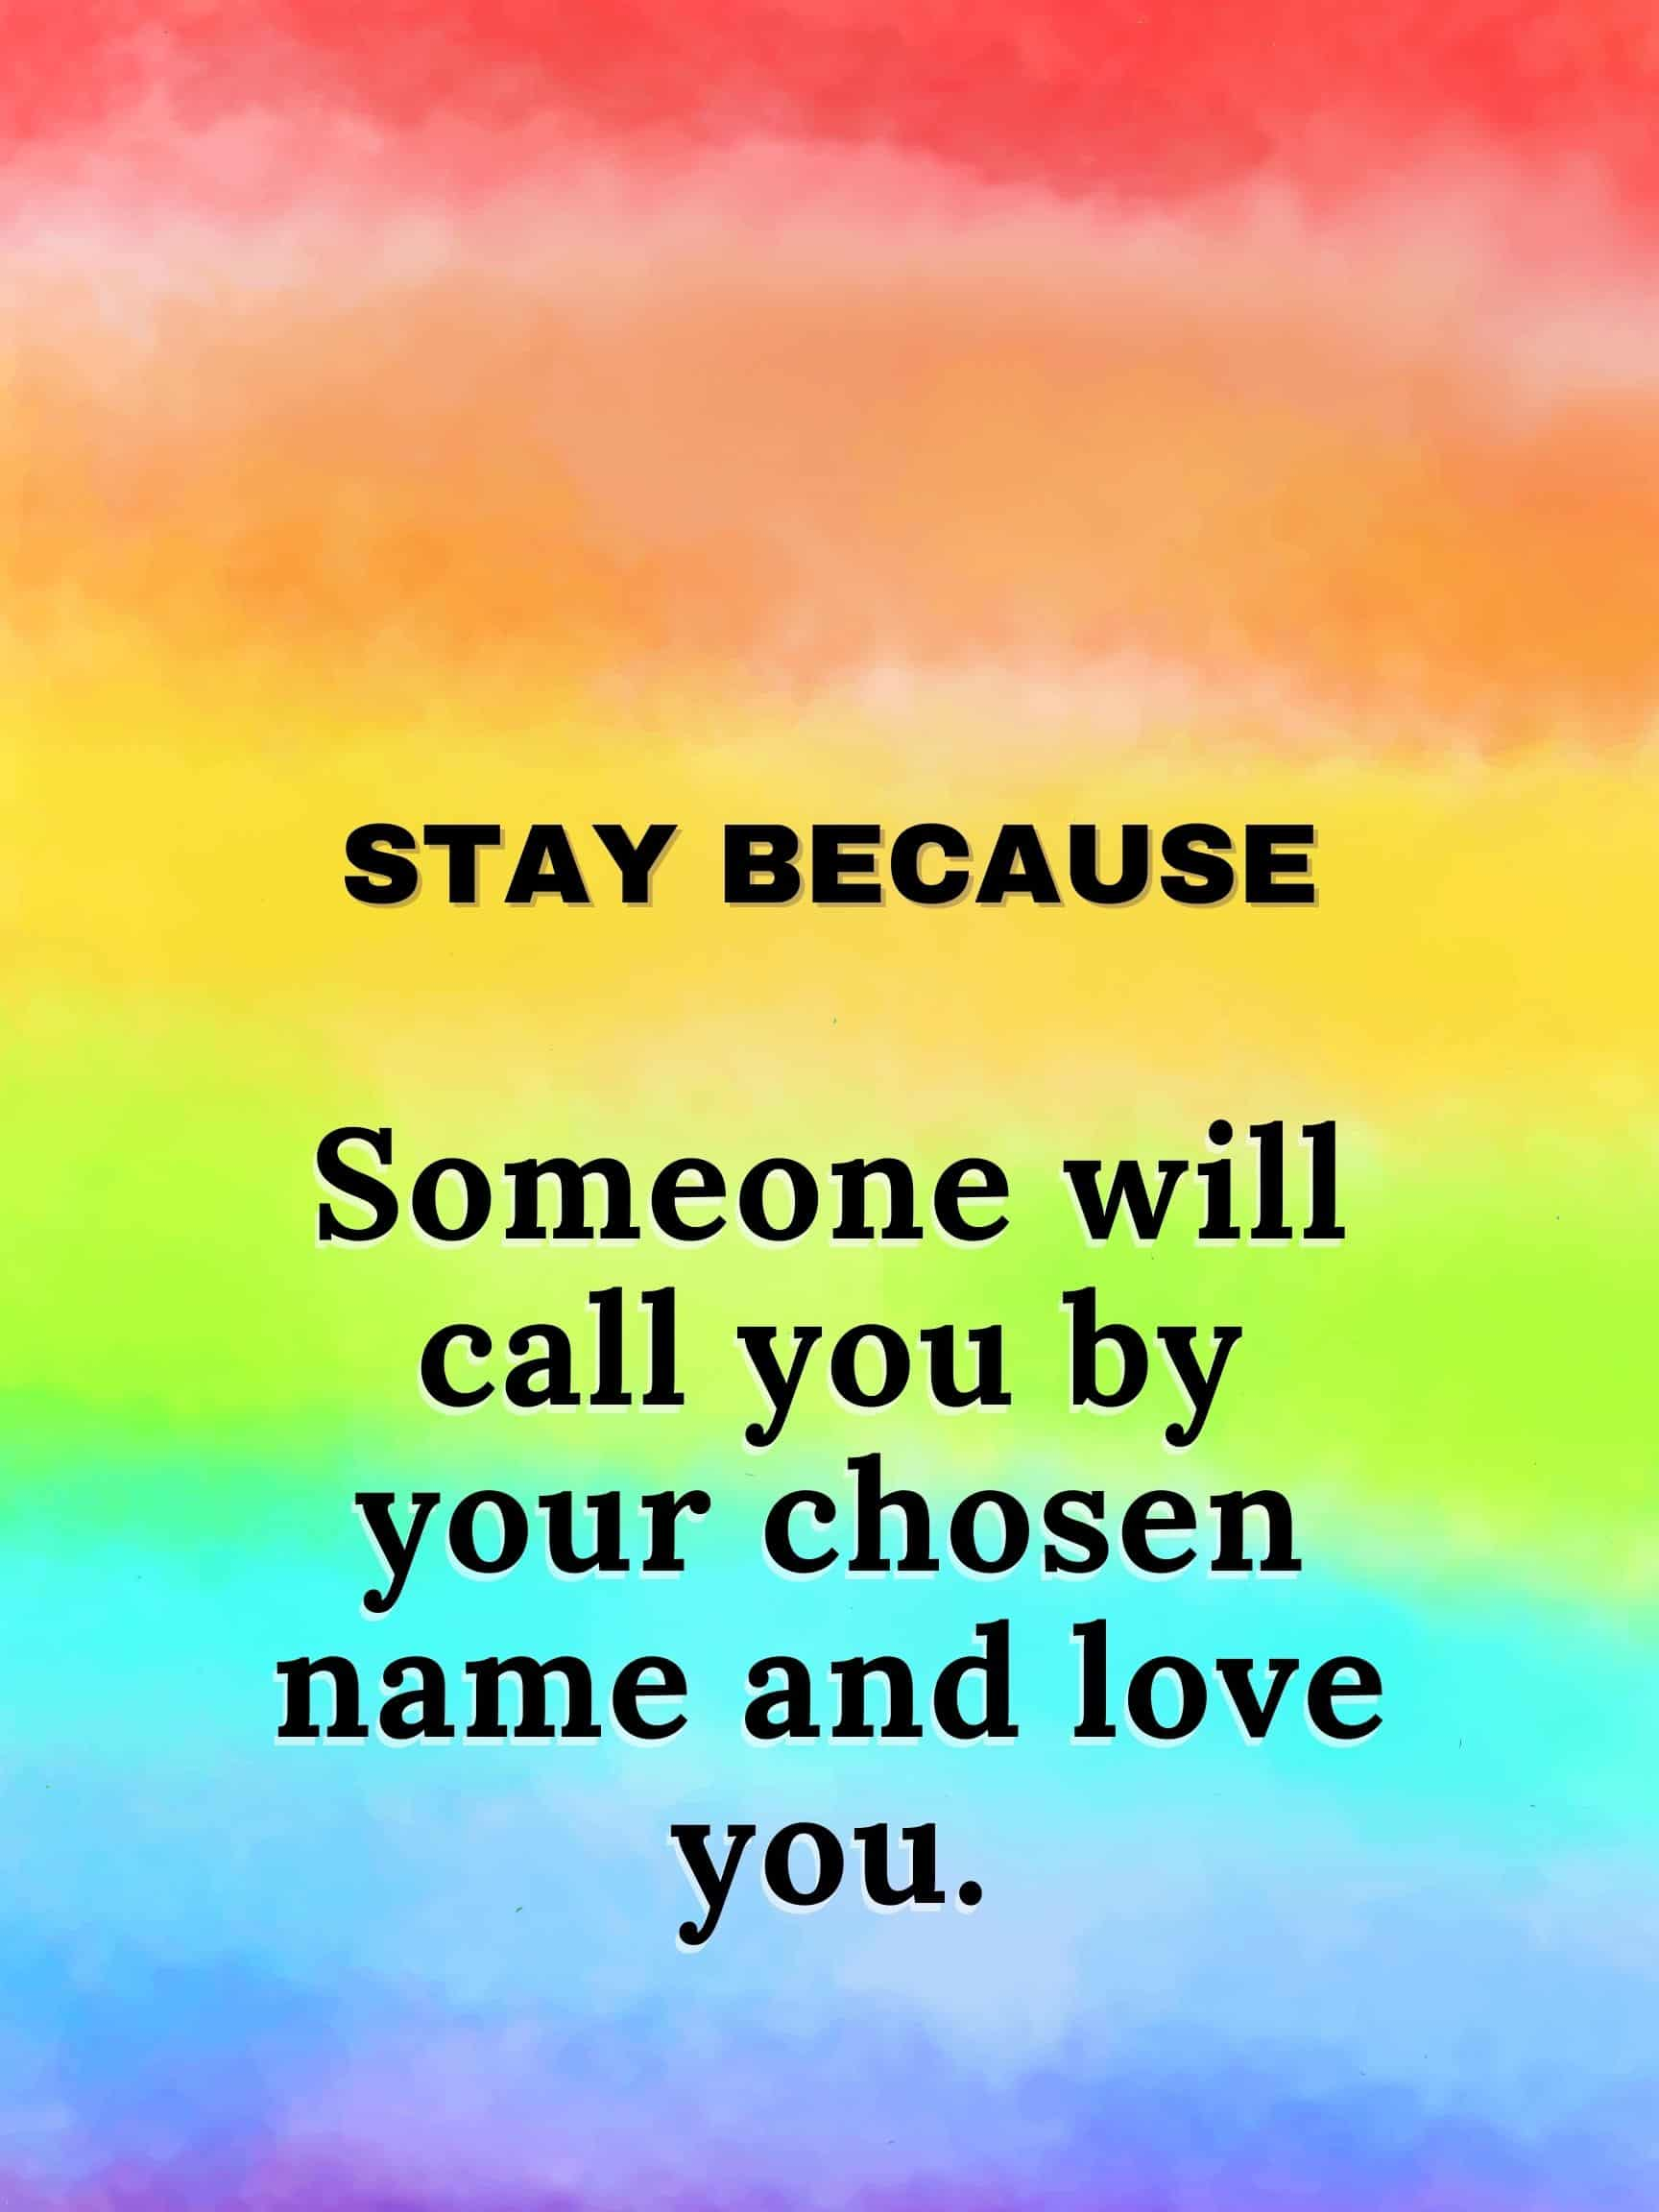 Stay because someone will call you by your chosen name love you #staybecause